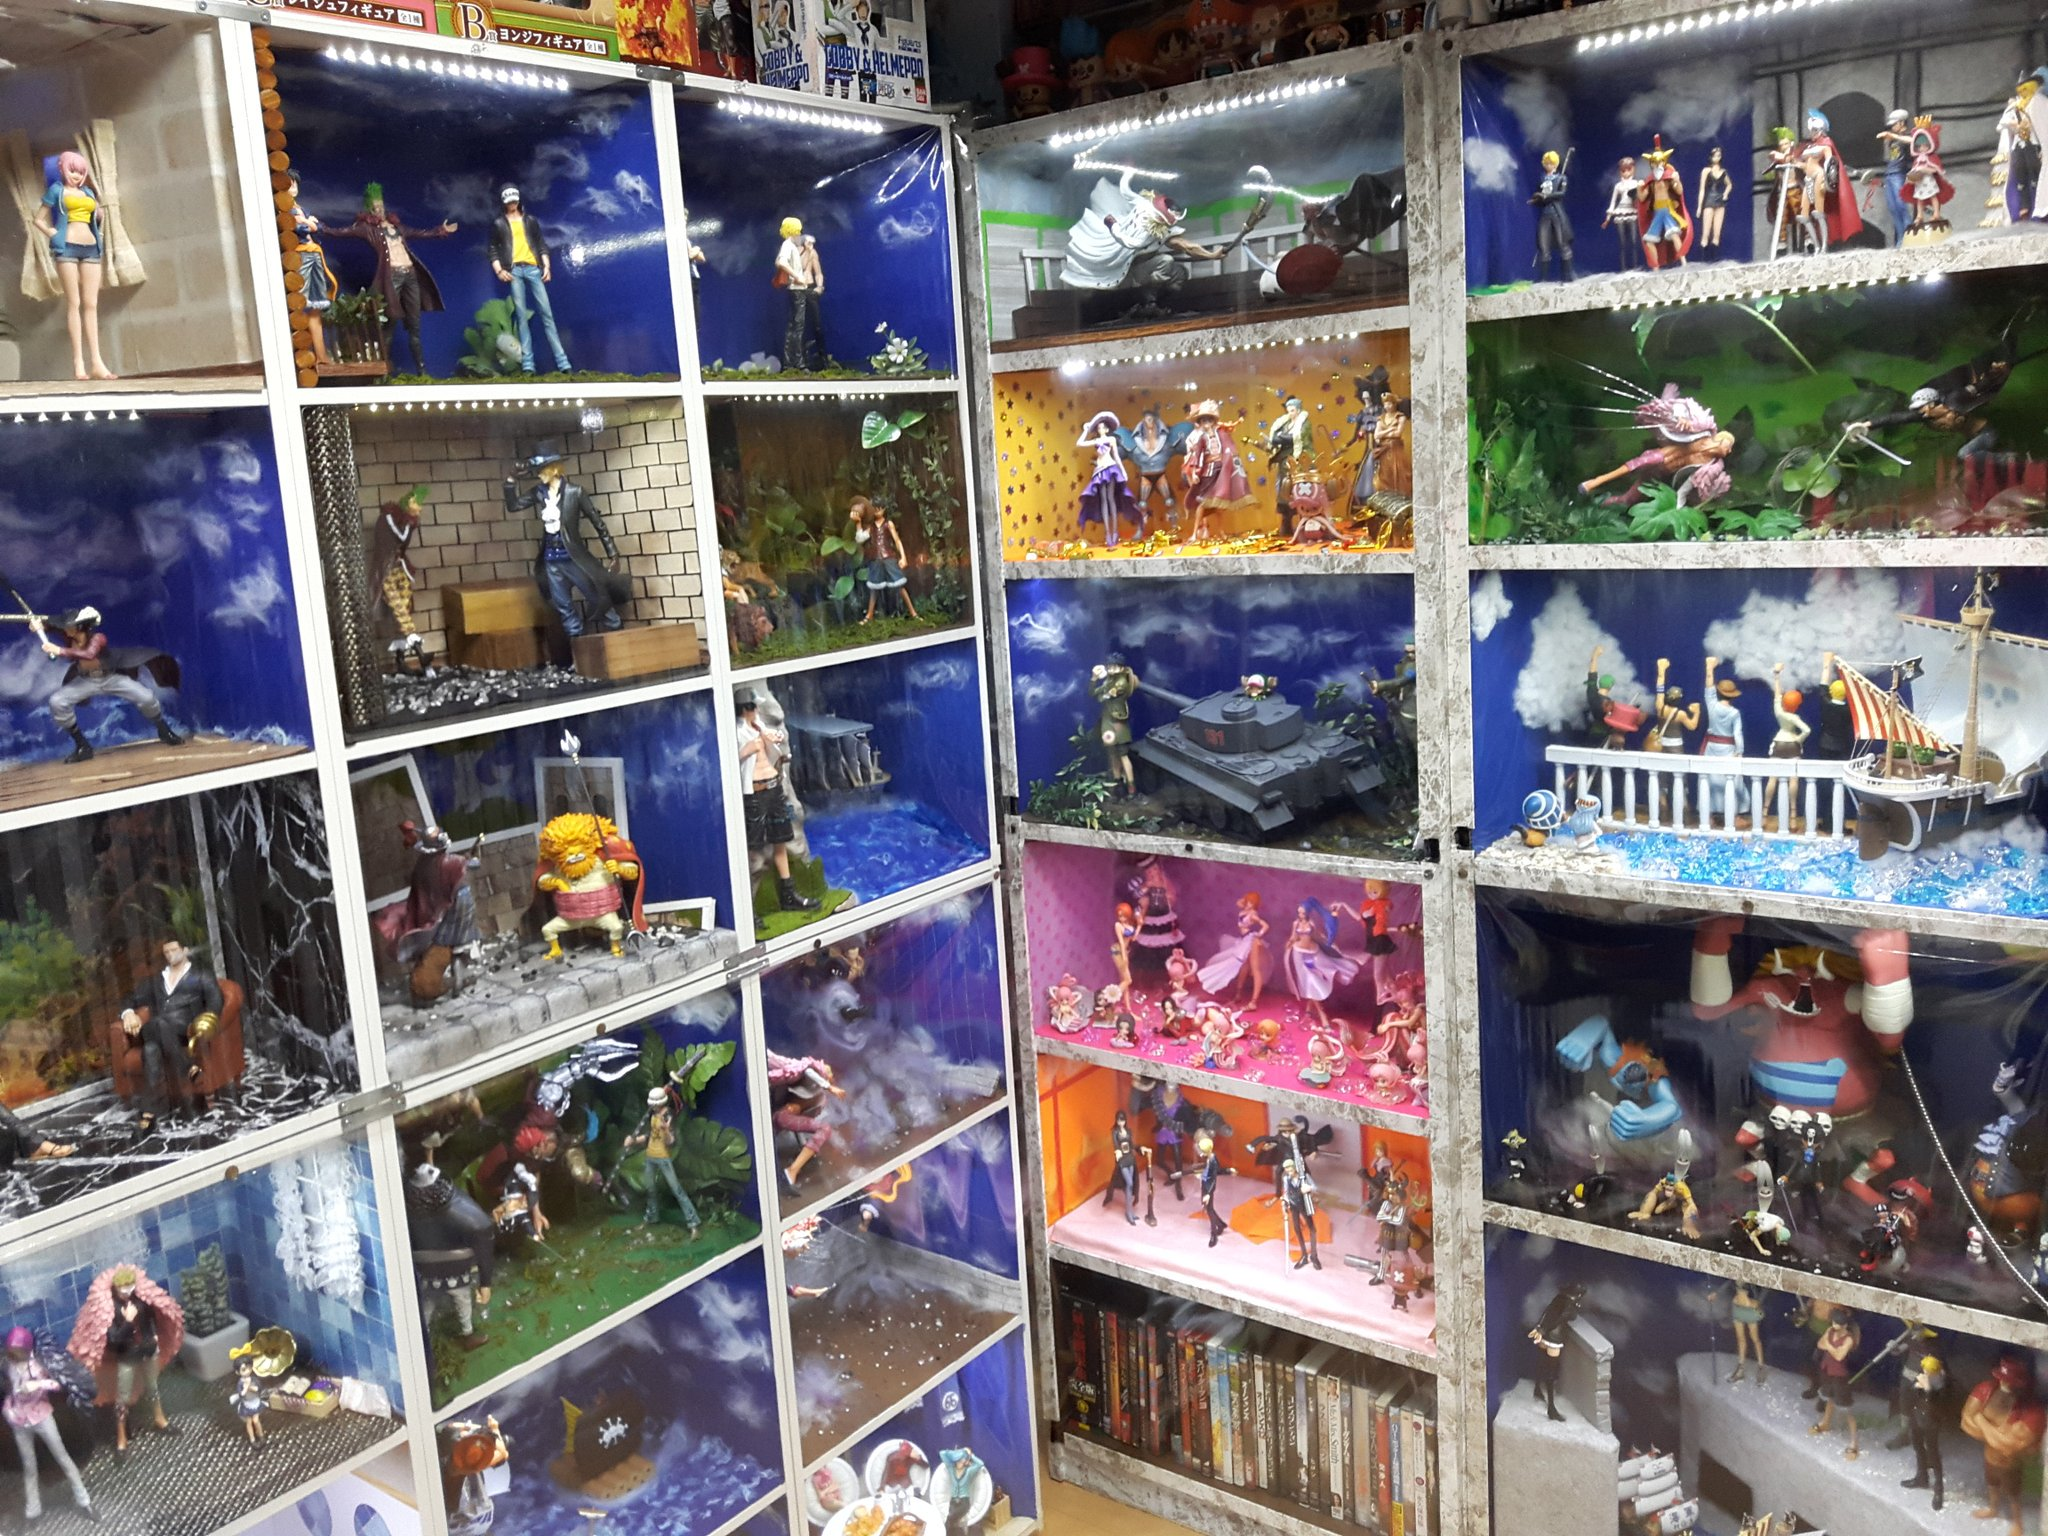 One Piece Fan Recreates Iconic Scenes at Home with Diorama